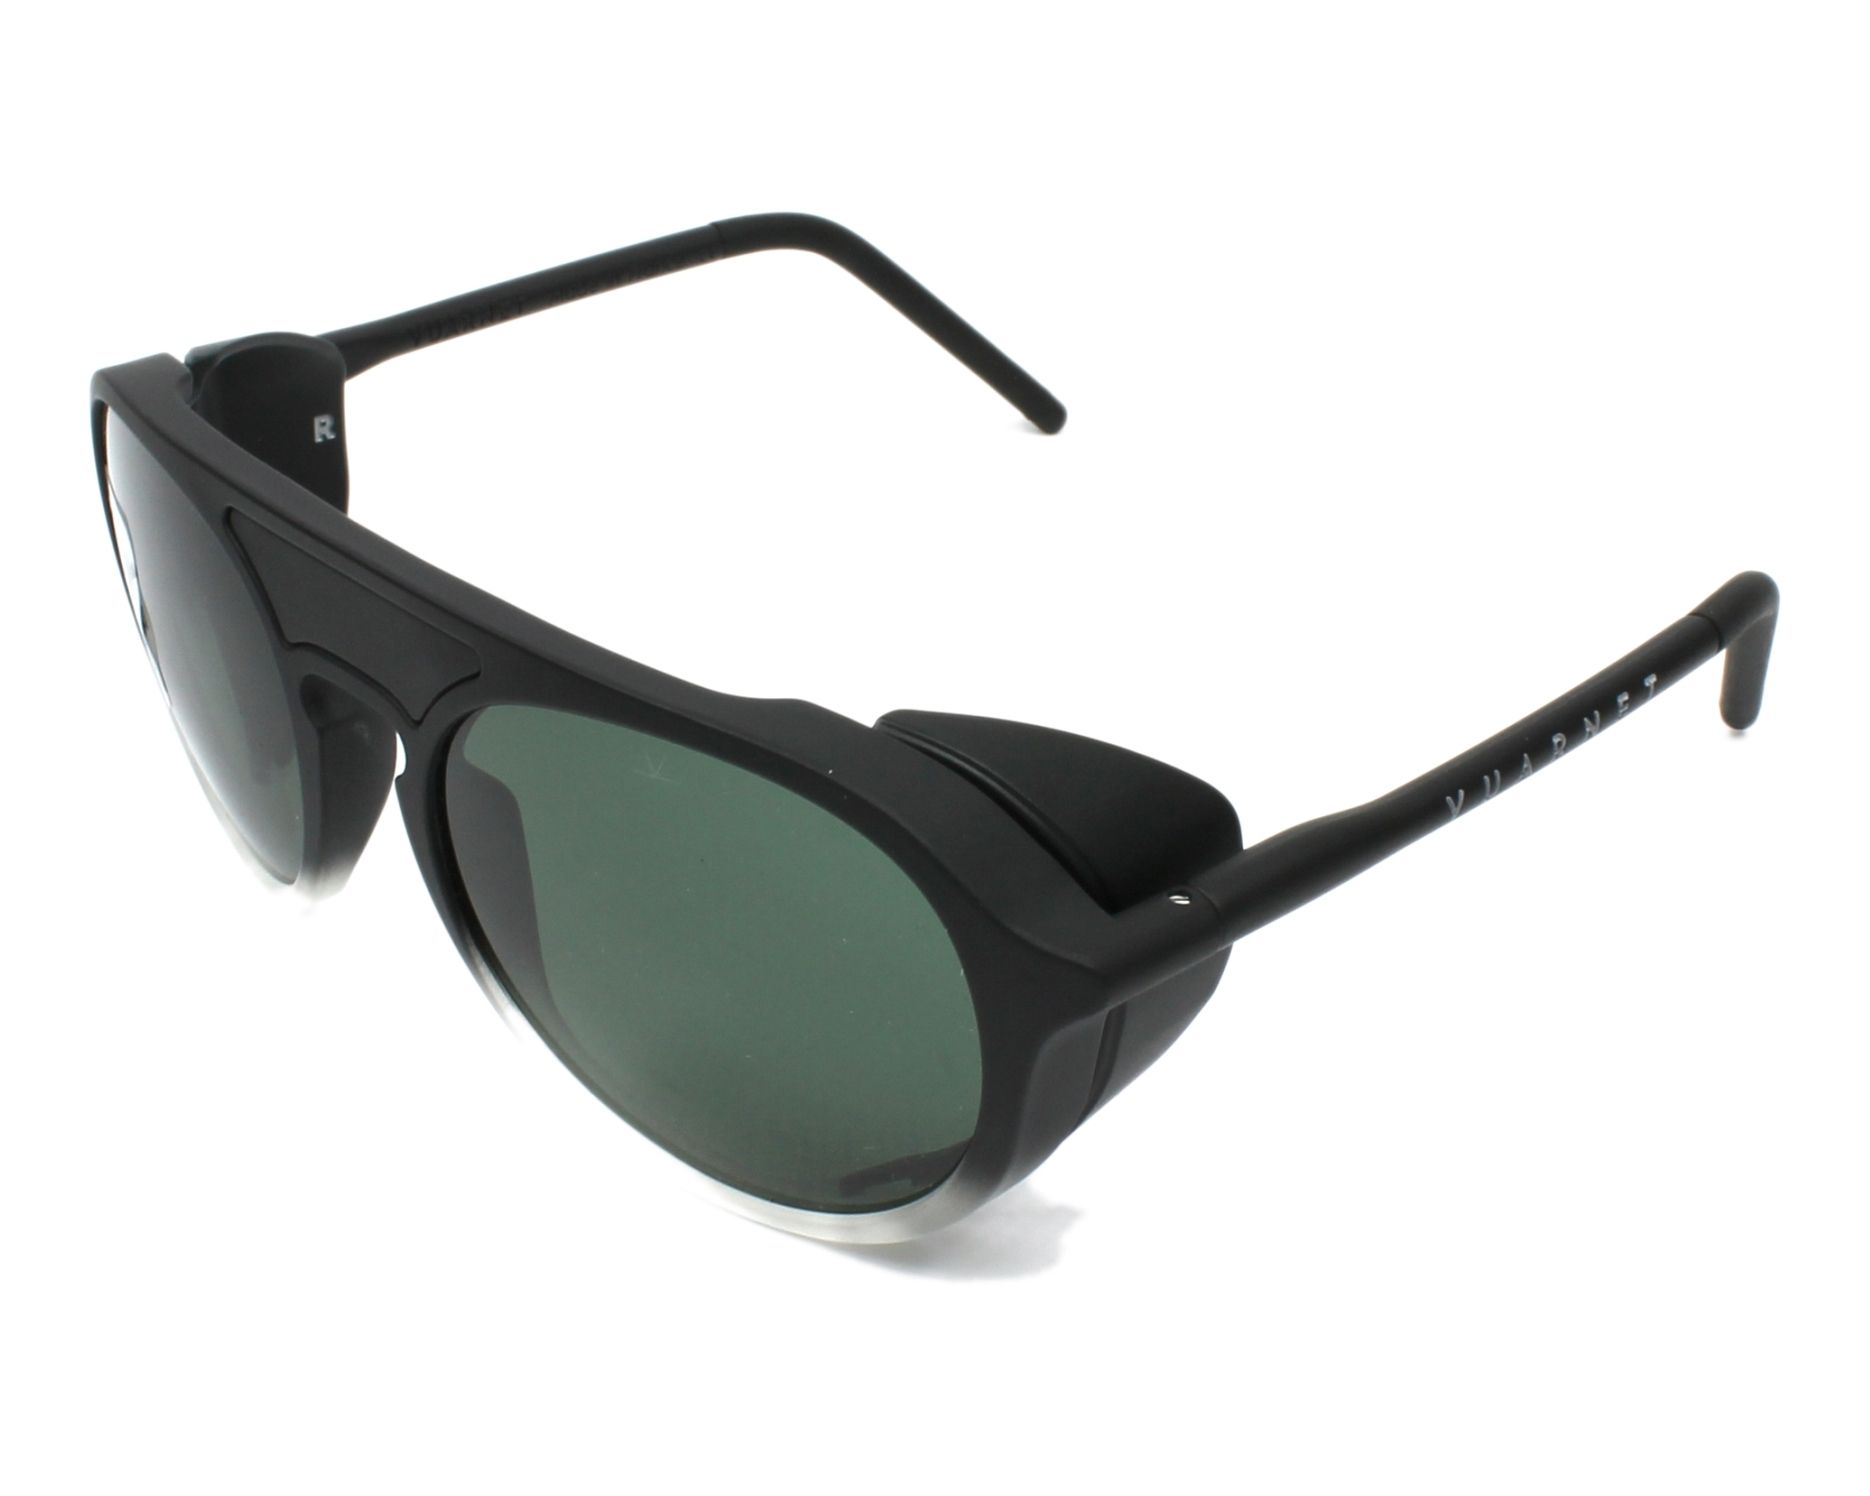 2cf1687e4fb Sunglasses Vuarnet VL-1709 0005-1622 51-18 Black Crystal profile view